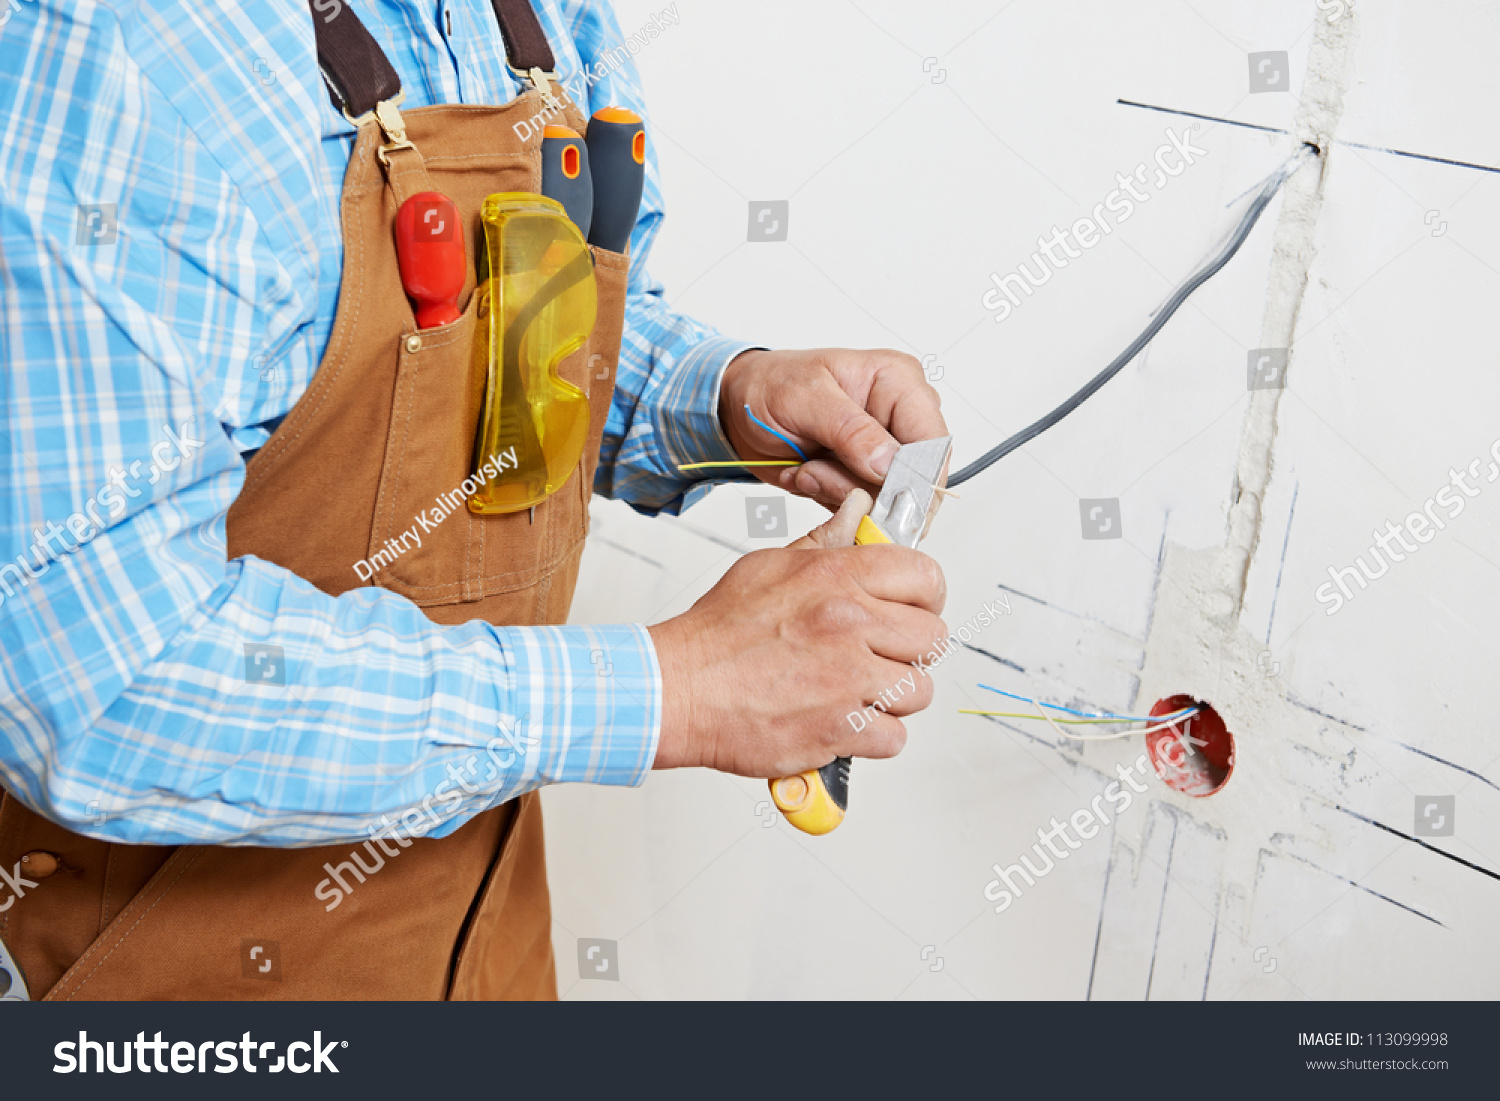 Closeup Electrician Worker Hands Wiring Cable Stock Photo Edit Now A Switched Wall Outlet Close Up Of At And Light Switch Or Power